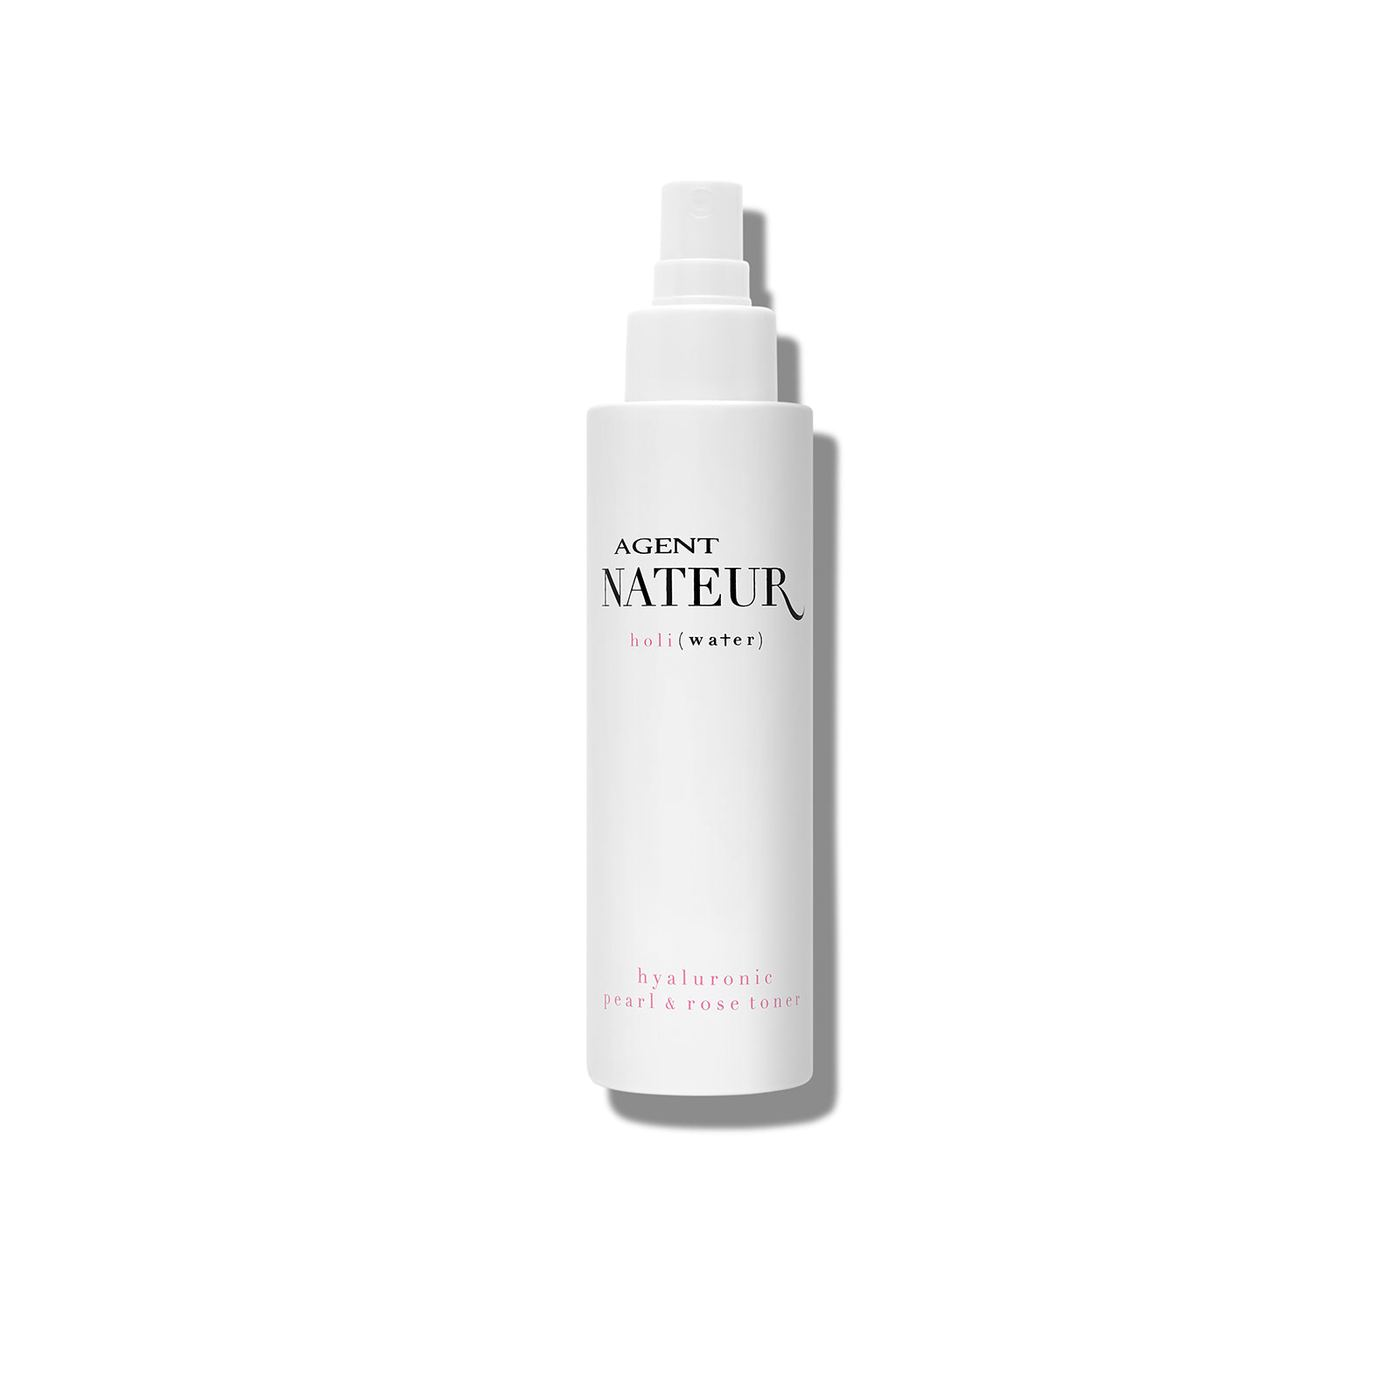 Holi (water) Peral and Rose Hyaluronic Essence